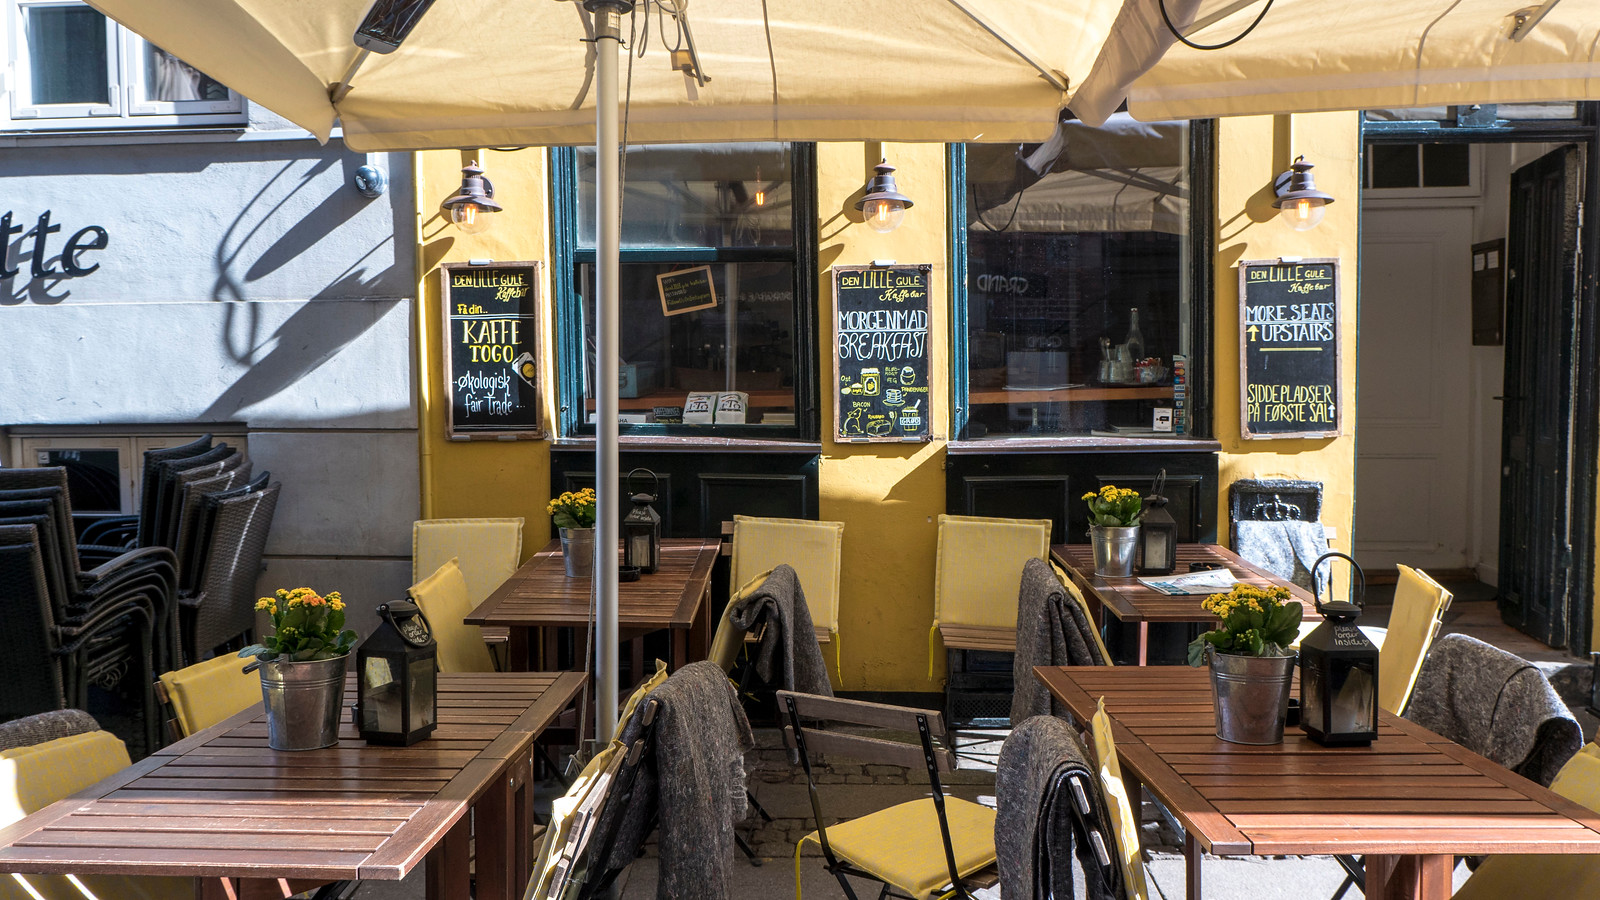 Den Lille Gule Kaffebar, or The Little Yellow Coffeebar in Copenhagen